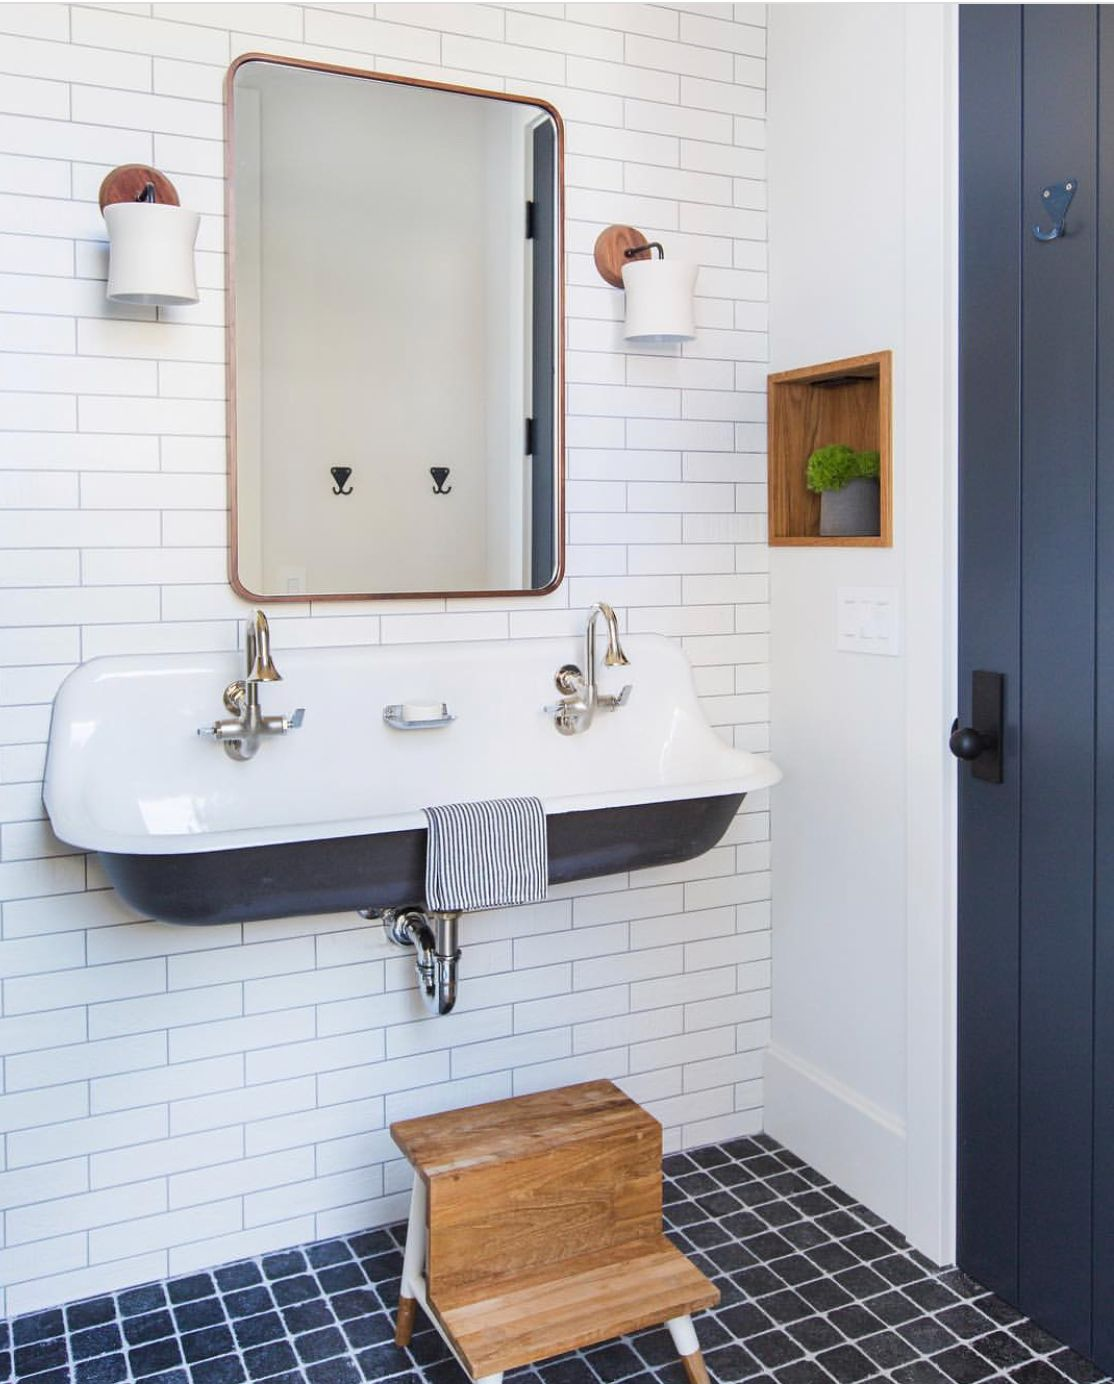 Pin By Carrie Huttenlocher On Bathrooms With Images Coastal